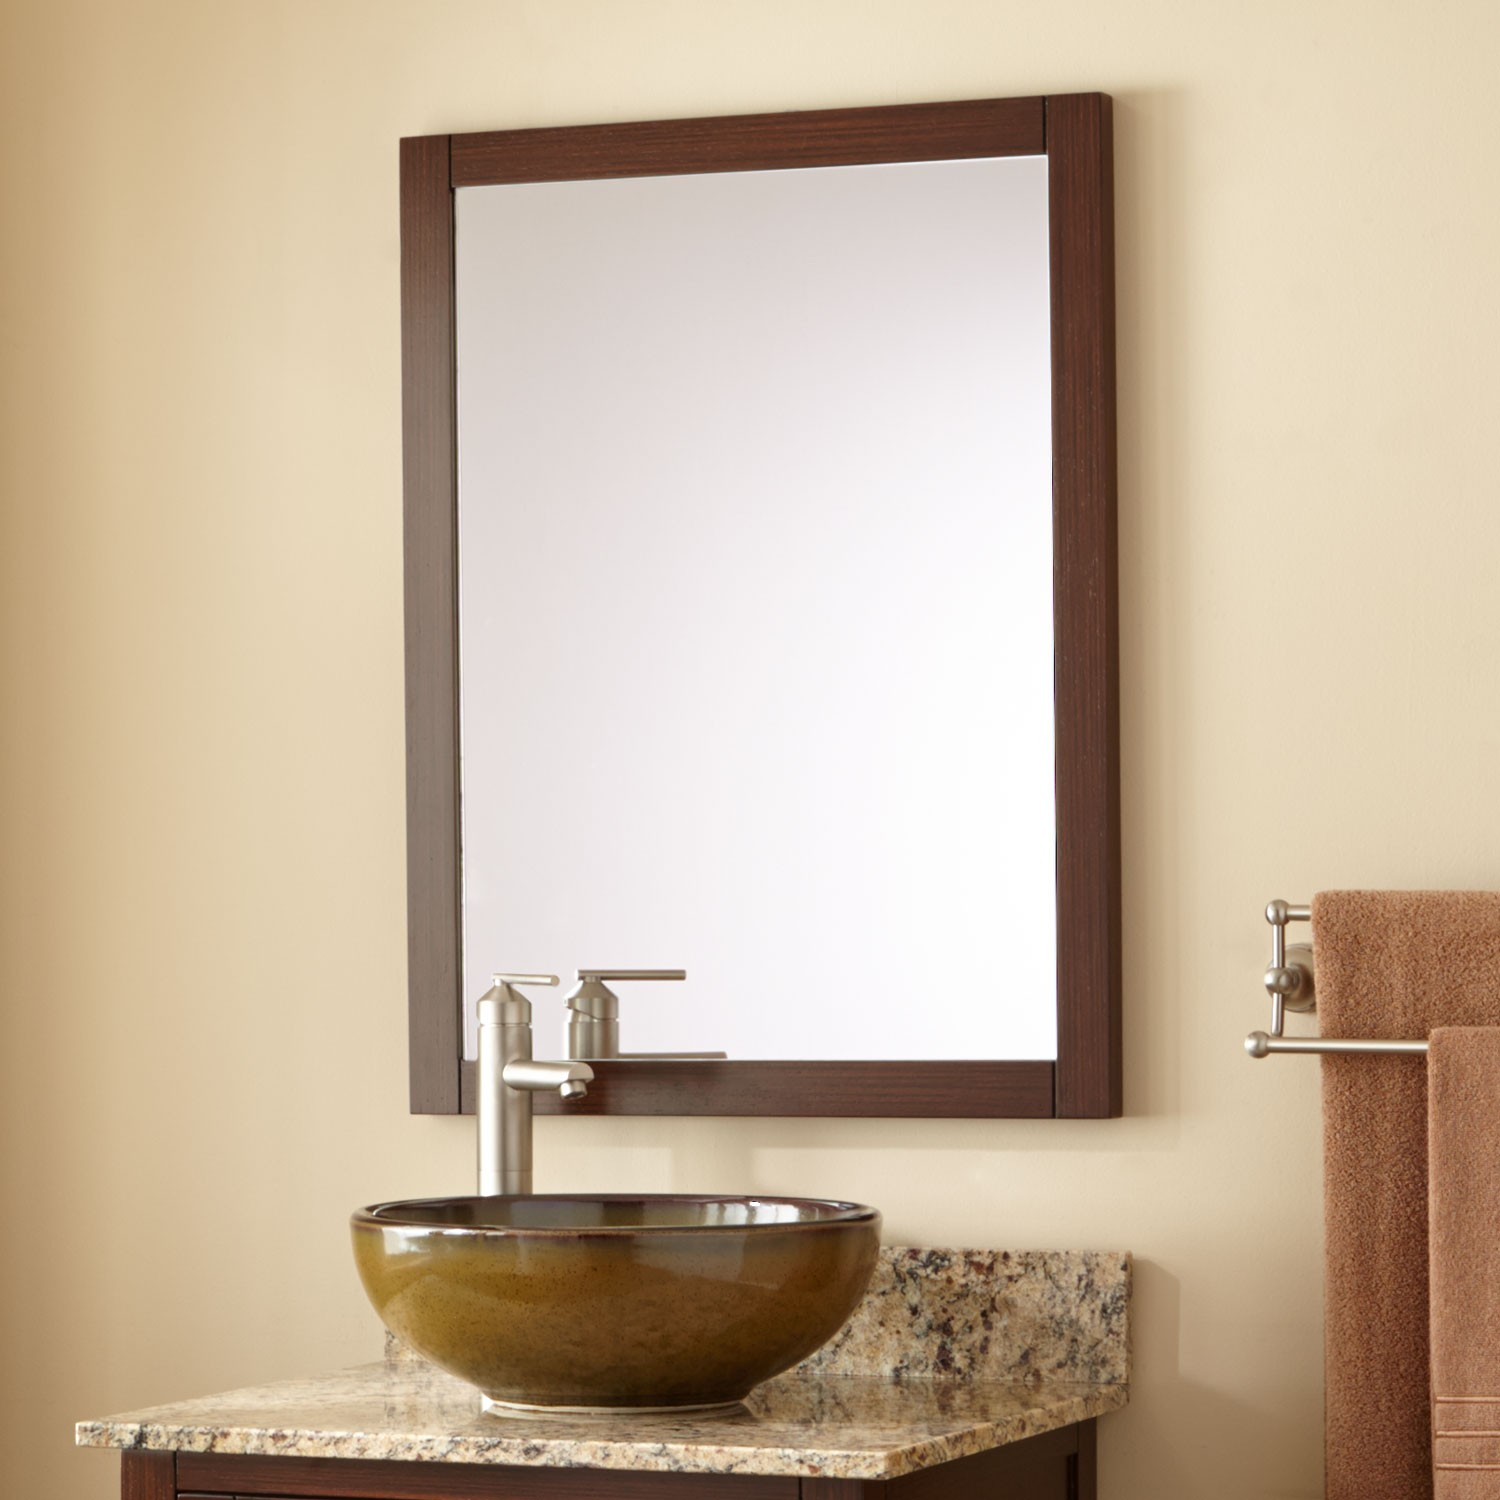 Amazing Everett Vanity Mirror - Wenge - Bathroom for Bathroom Vanity Mirrors